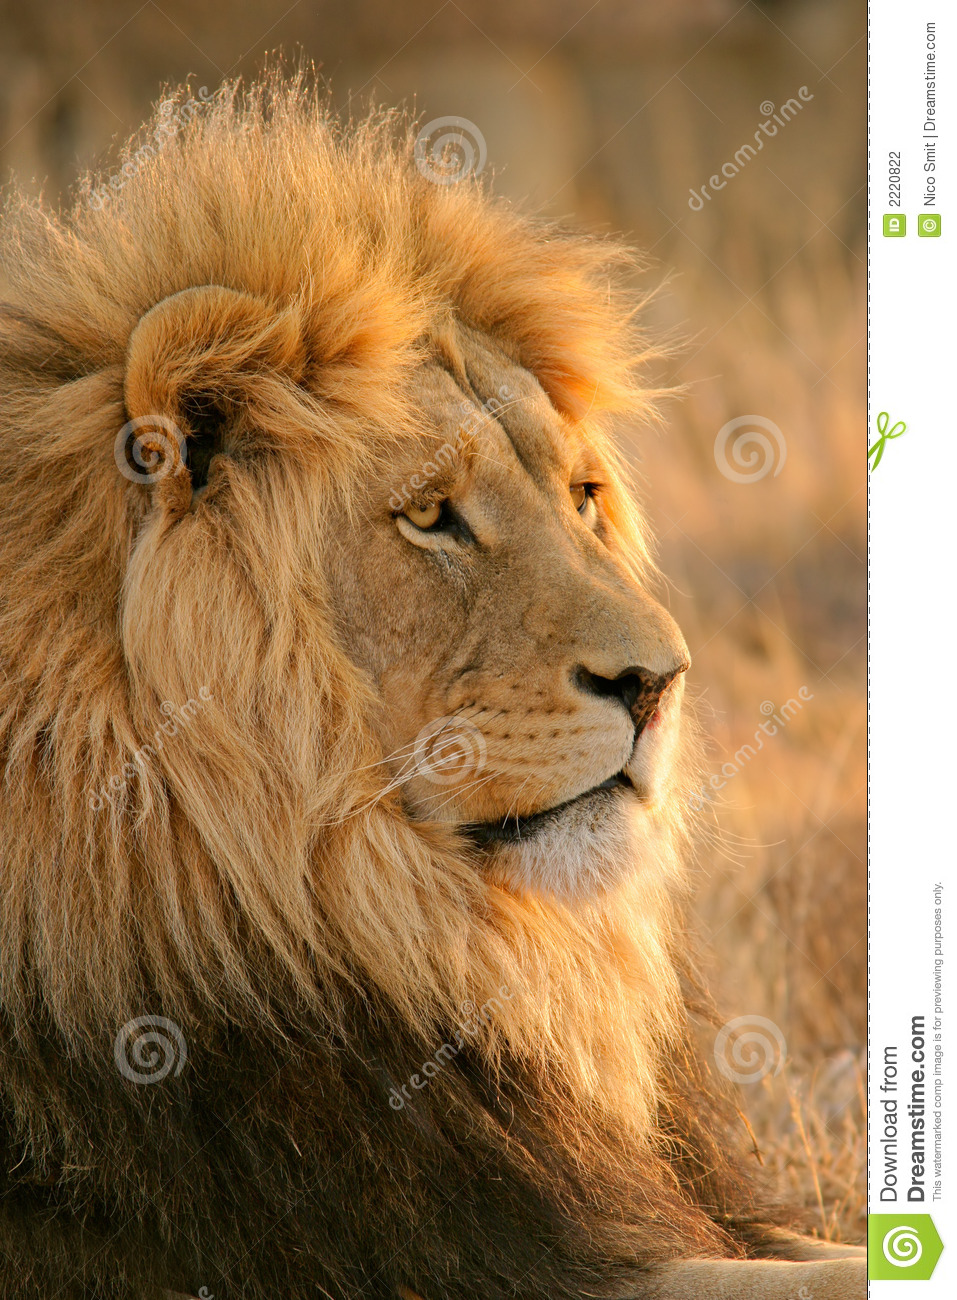 3d Moving Wallpapers For Windows 8 Free Download Big Male Lion Stock Photo Image Of Nature Predator